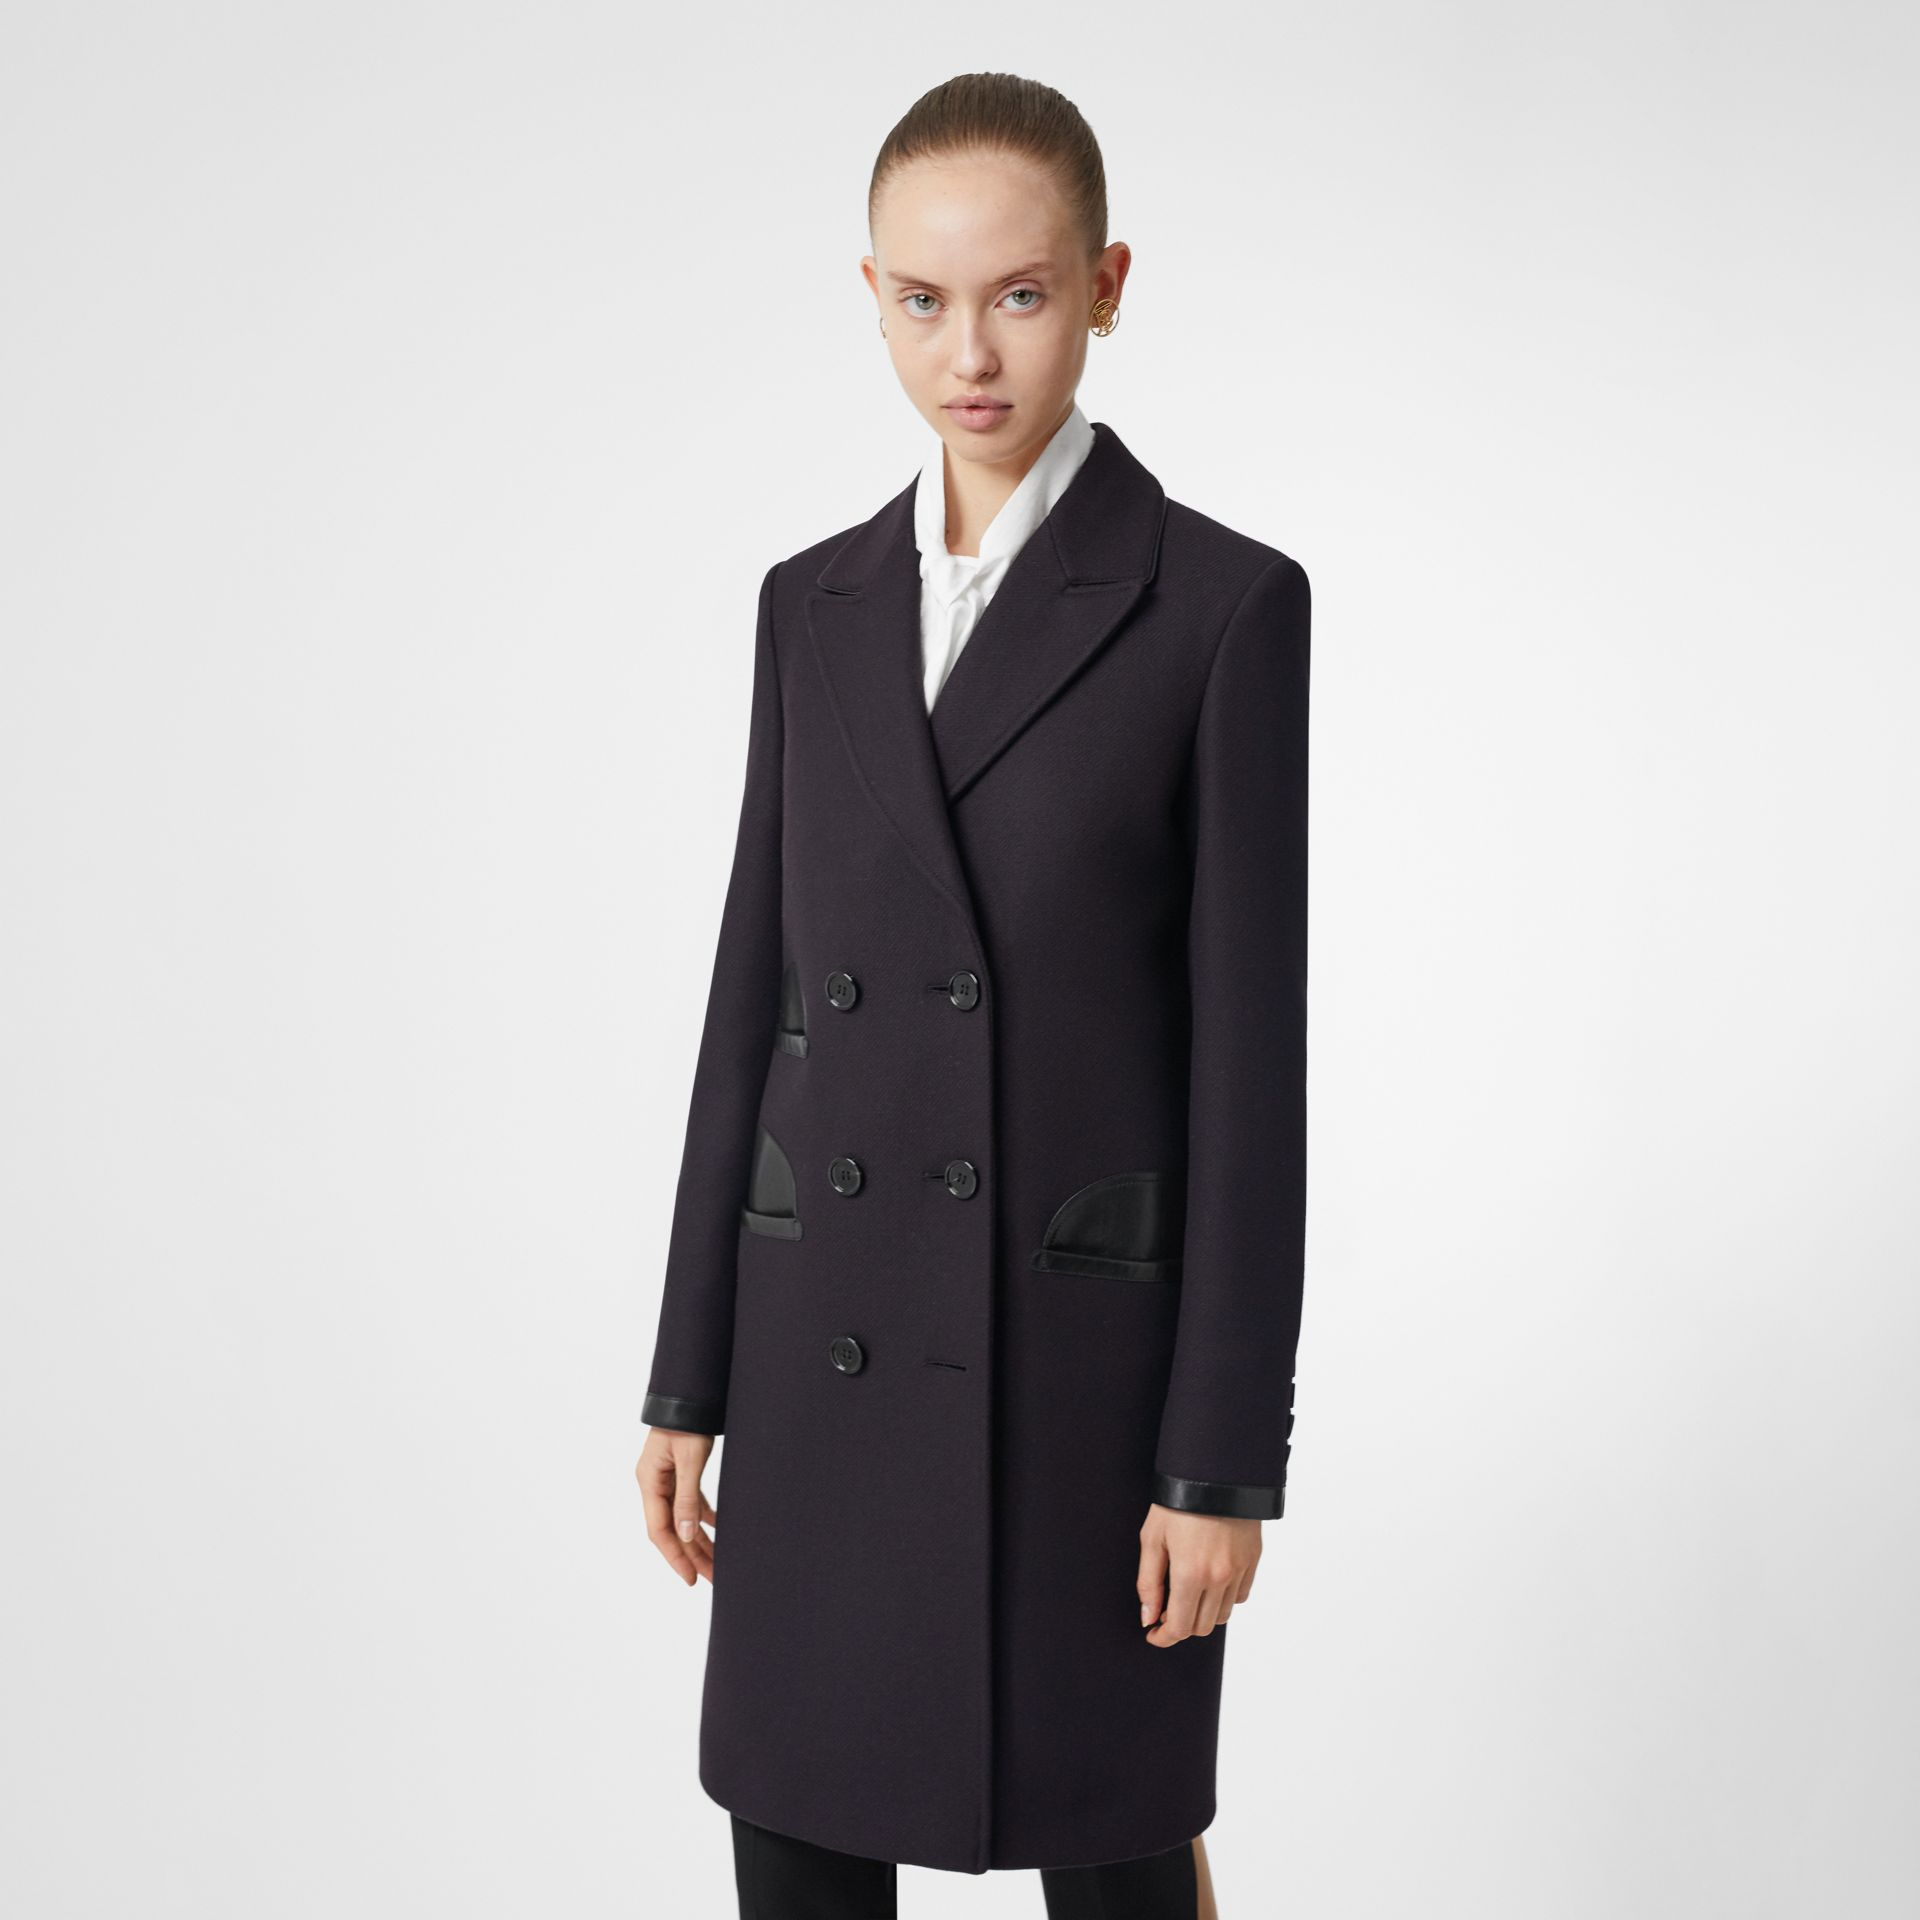 Lambskin Trim Wool Cashmere Blend Tailored Coat in Black Maroon - Women | Burberry United States - gallery image 4